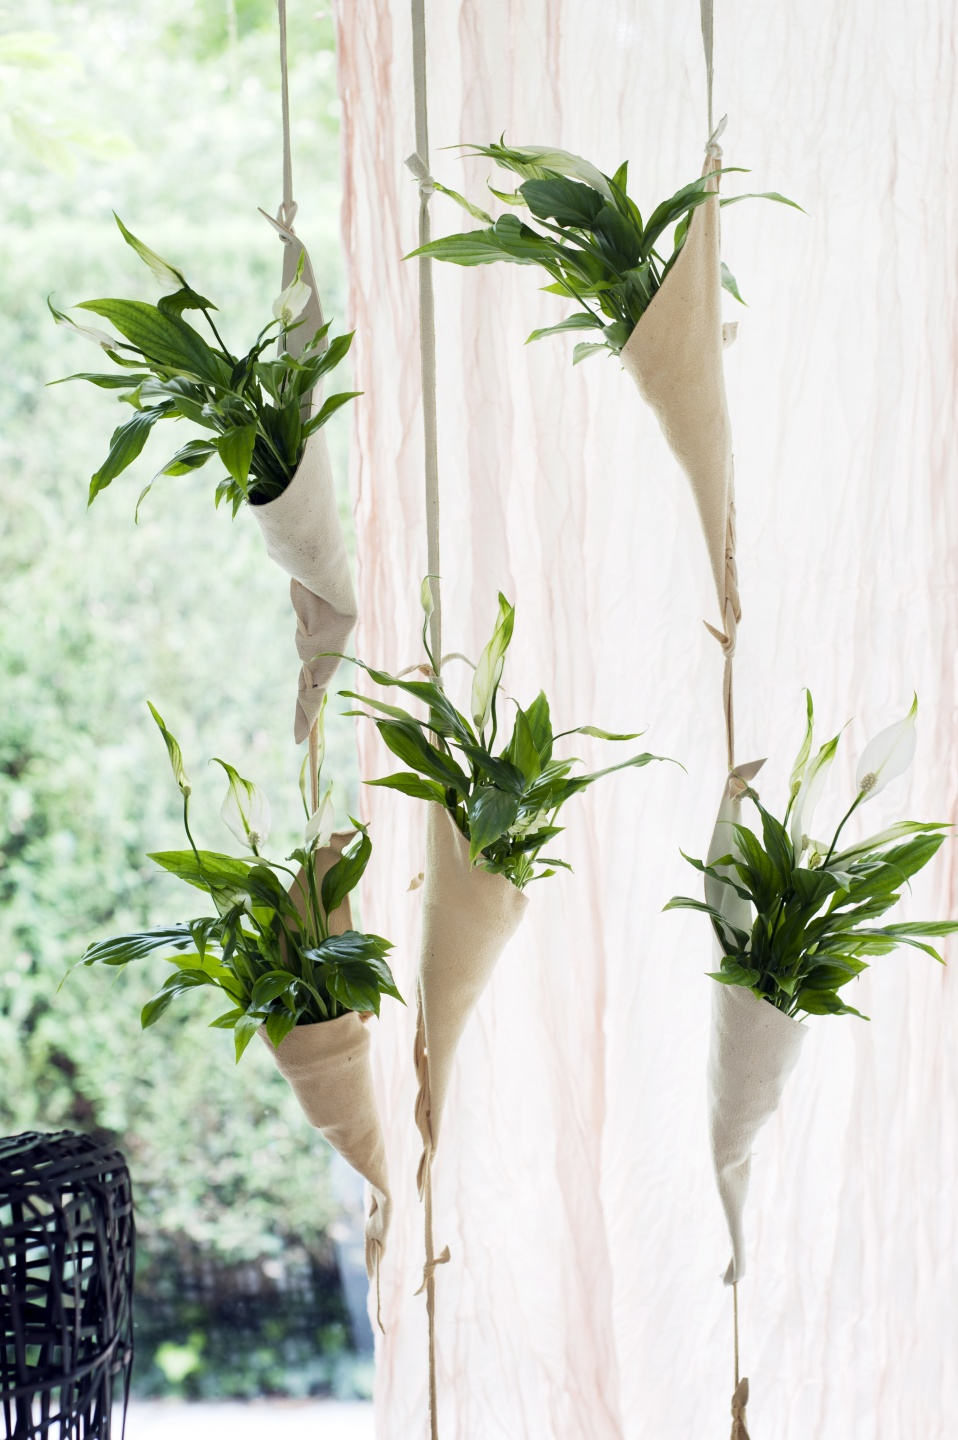 Diy tip a curtain of peace lilies the joy of plants for Yucca wohnzimmer